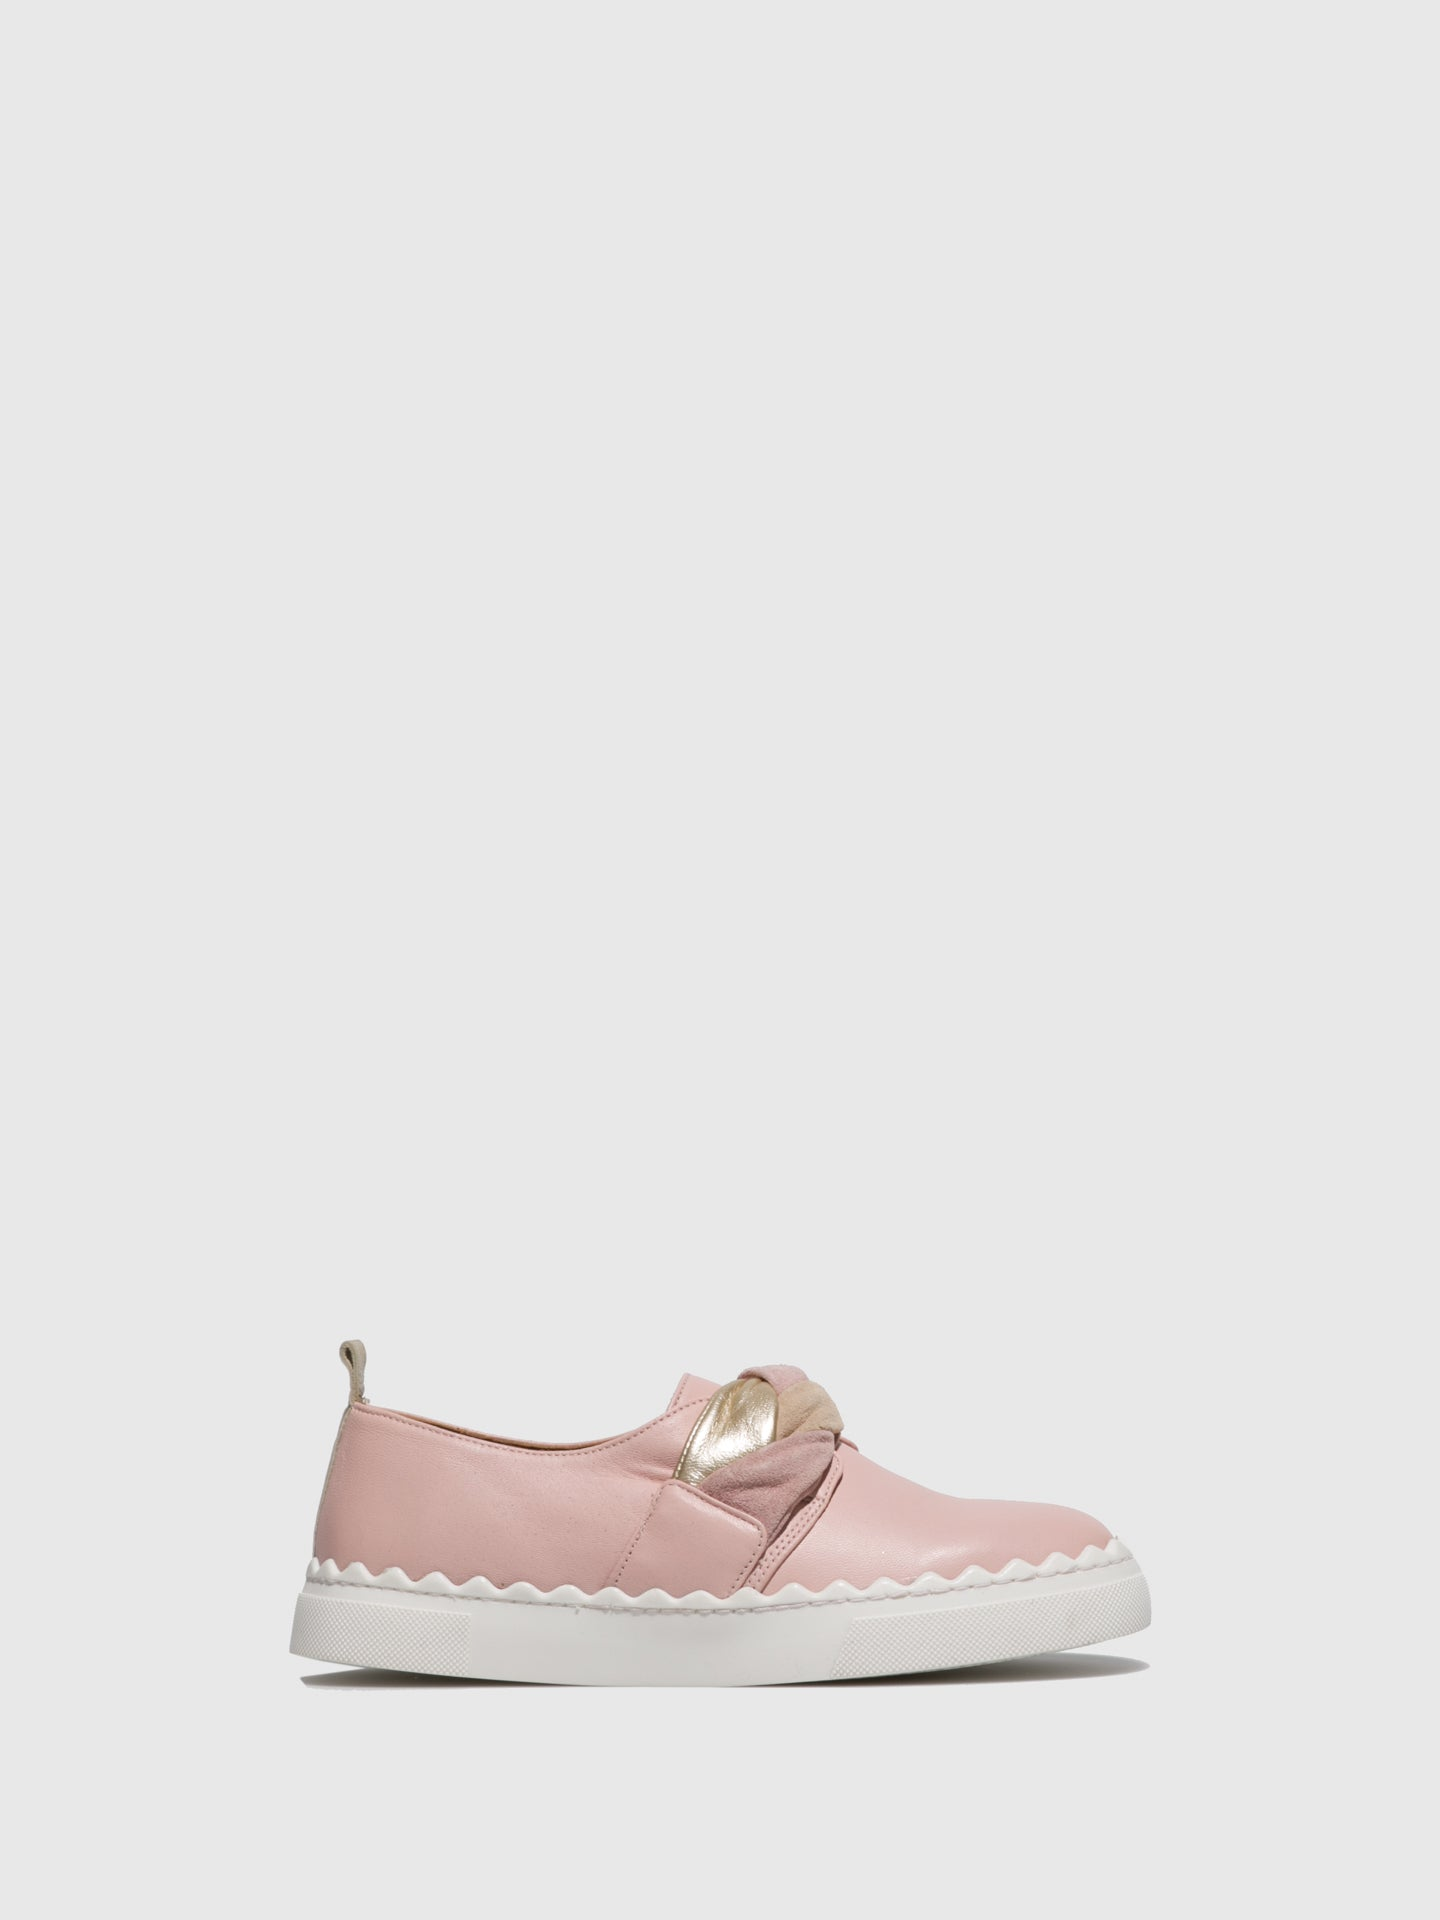 JJ Heitor Pink Slip-on Shoes